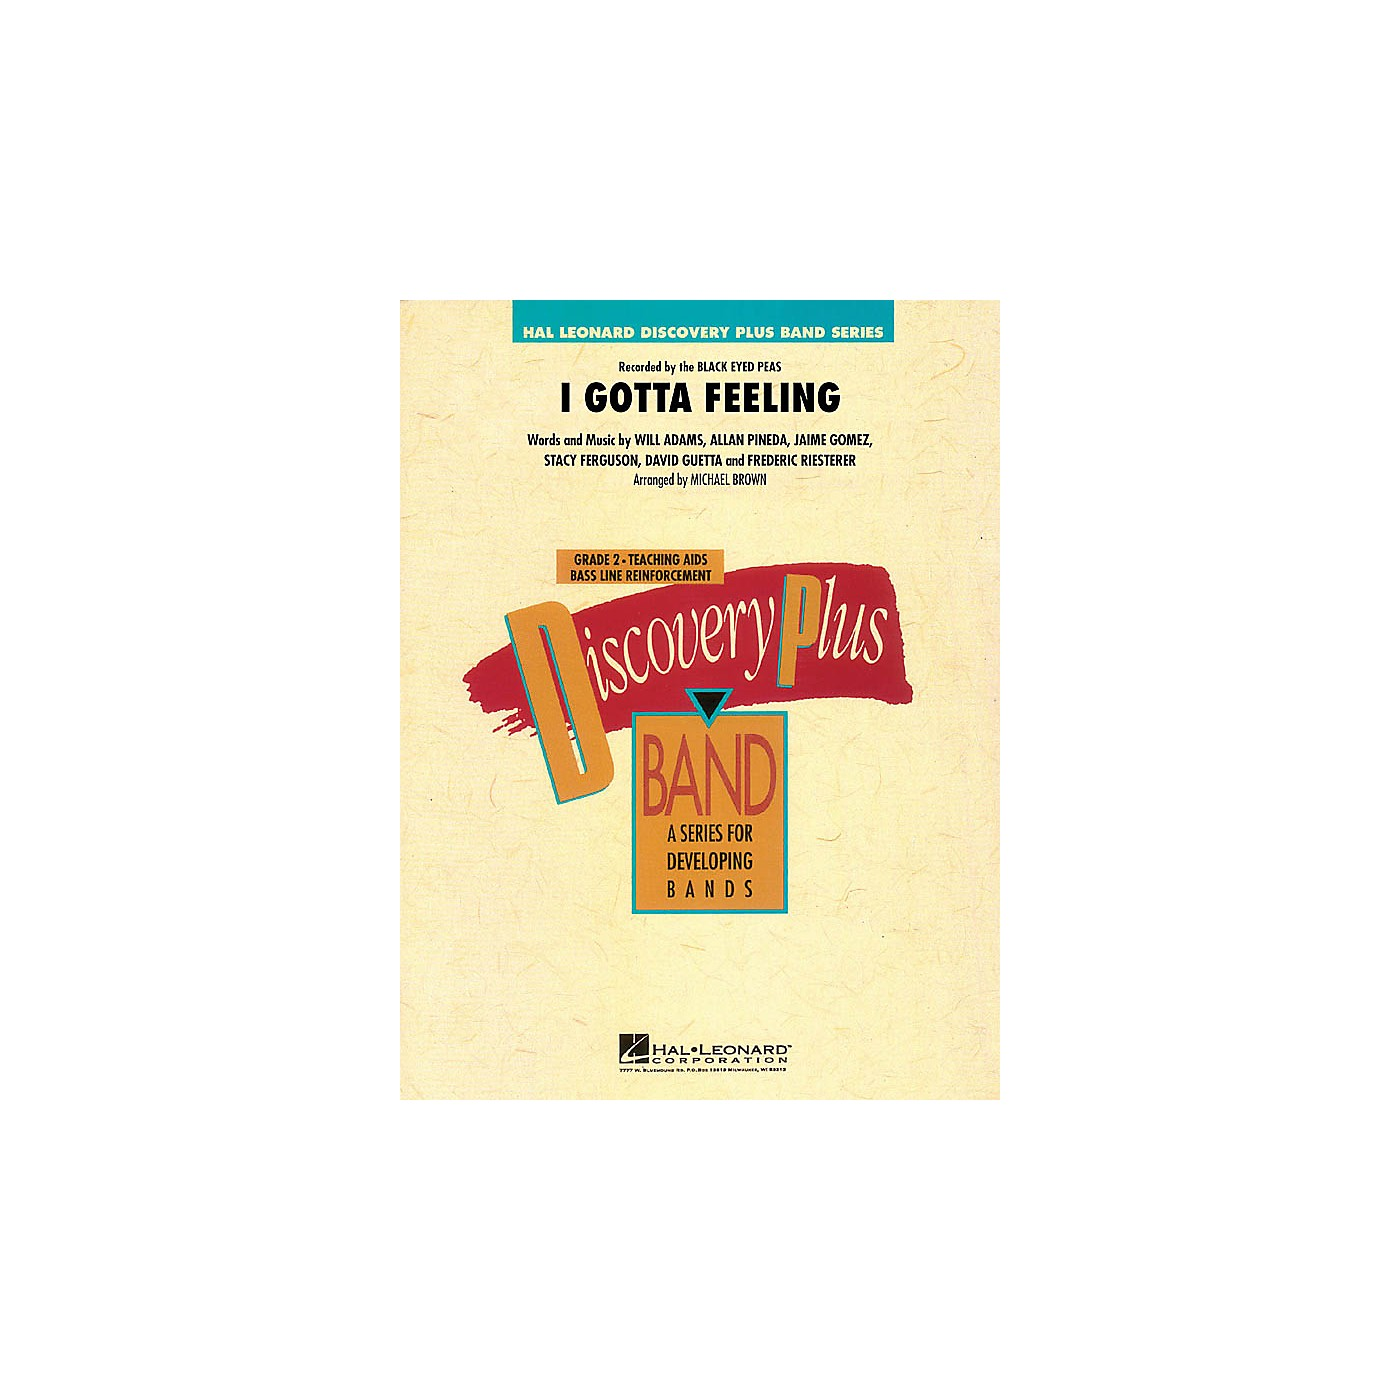 Hal Leonard I Gotta Feeling - Discovery Plus Band Level 2 arranged by Michael Brown thumbnail